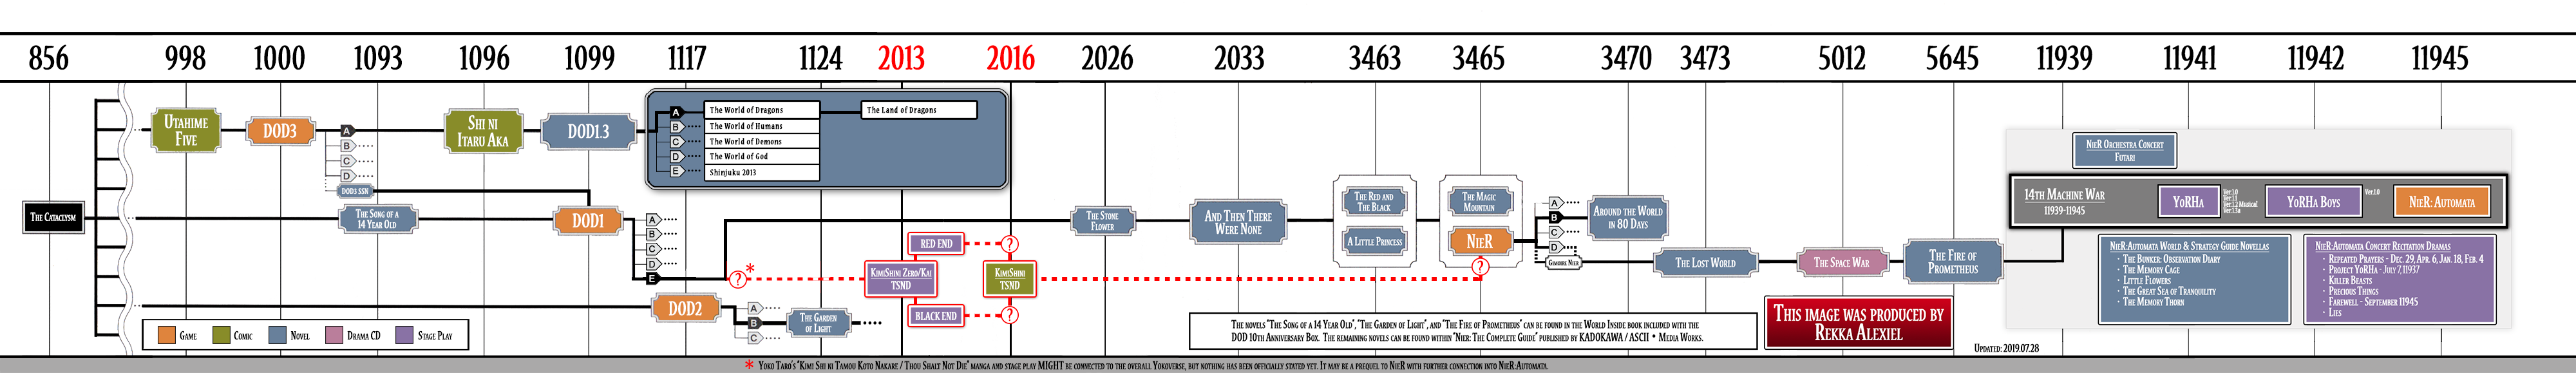 Timelines Nier Wiki Fandom See more ideas about szexi a community for the nier/nier automata & drakengard trilogy. timelines nier wiki fandom